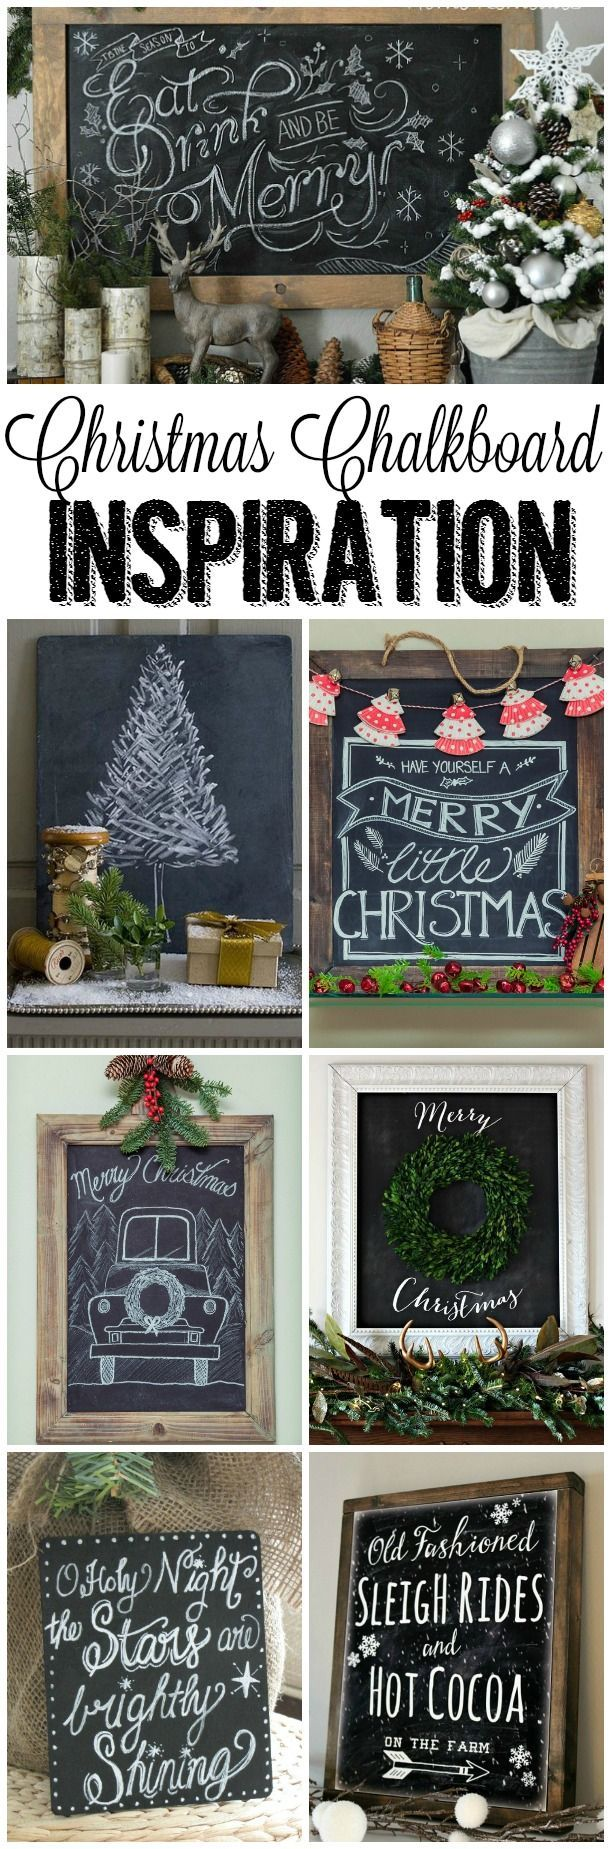 Hometalk diy christmas window decoration - Find This Pin And More On Hometalk Christmas